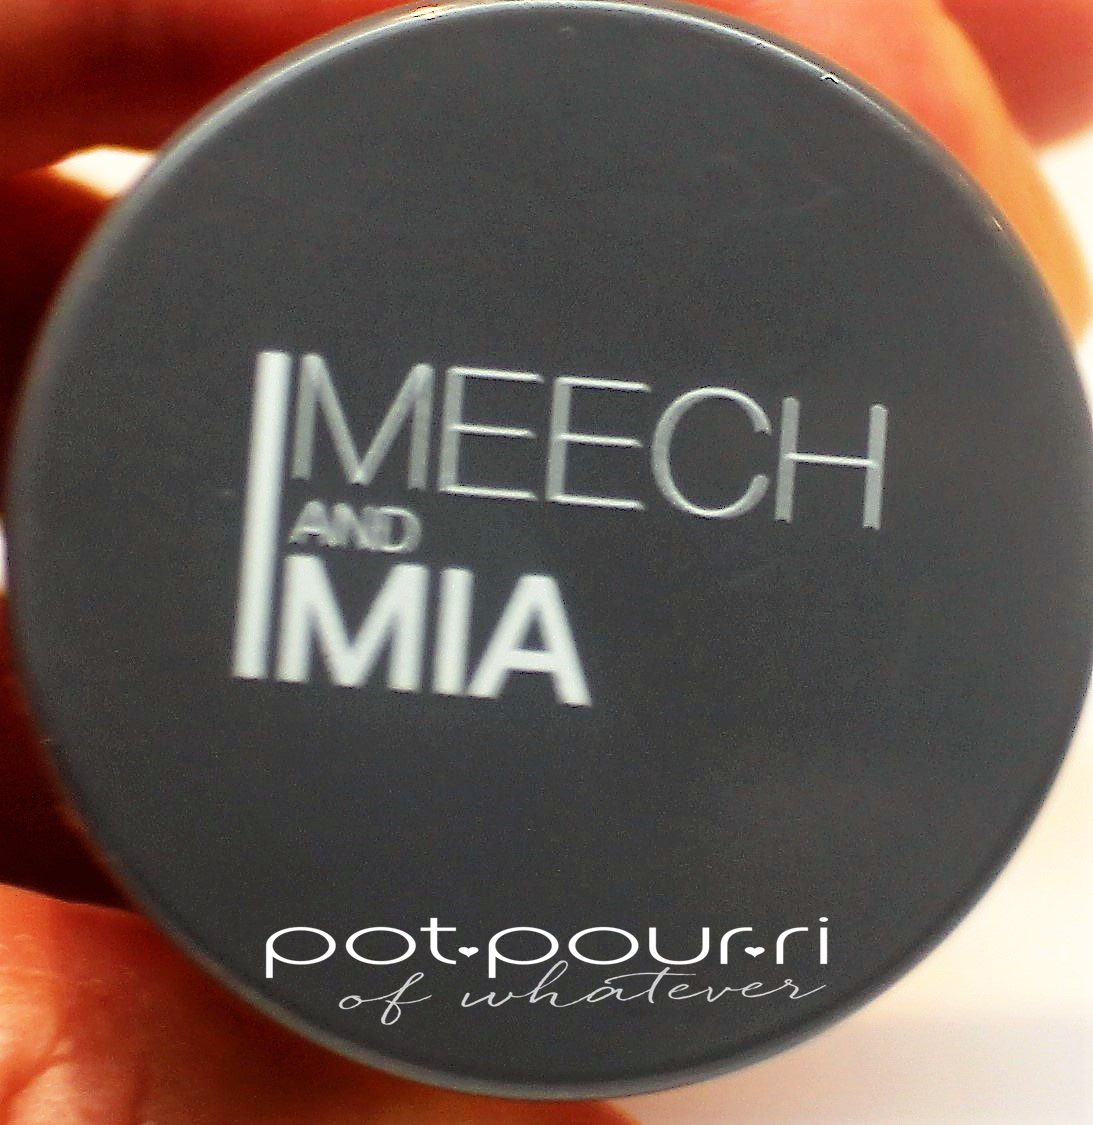 ipsy-meech-Ima-shadow-pigments-lid